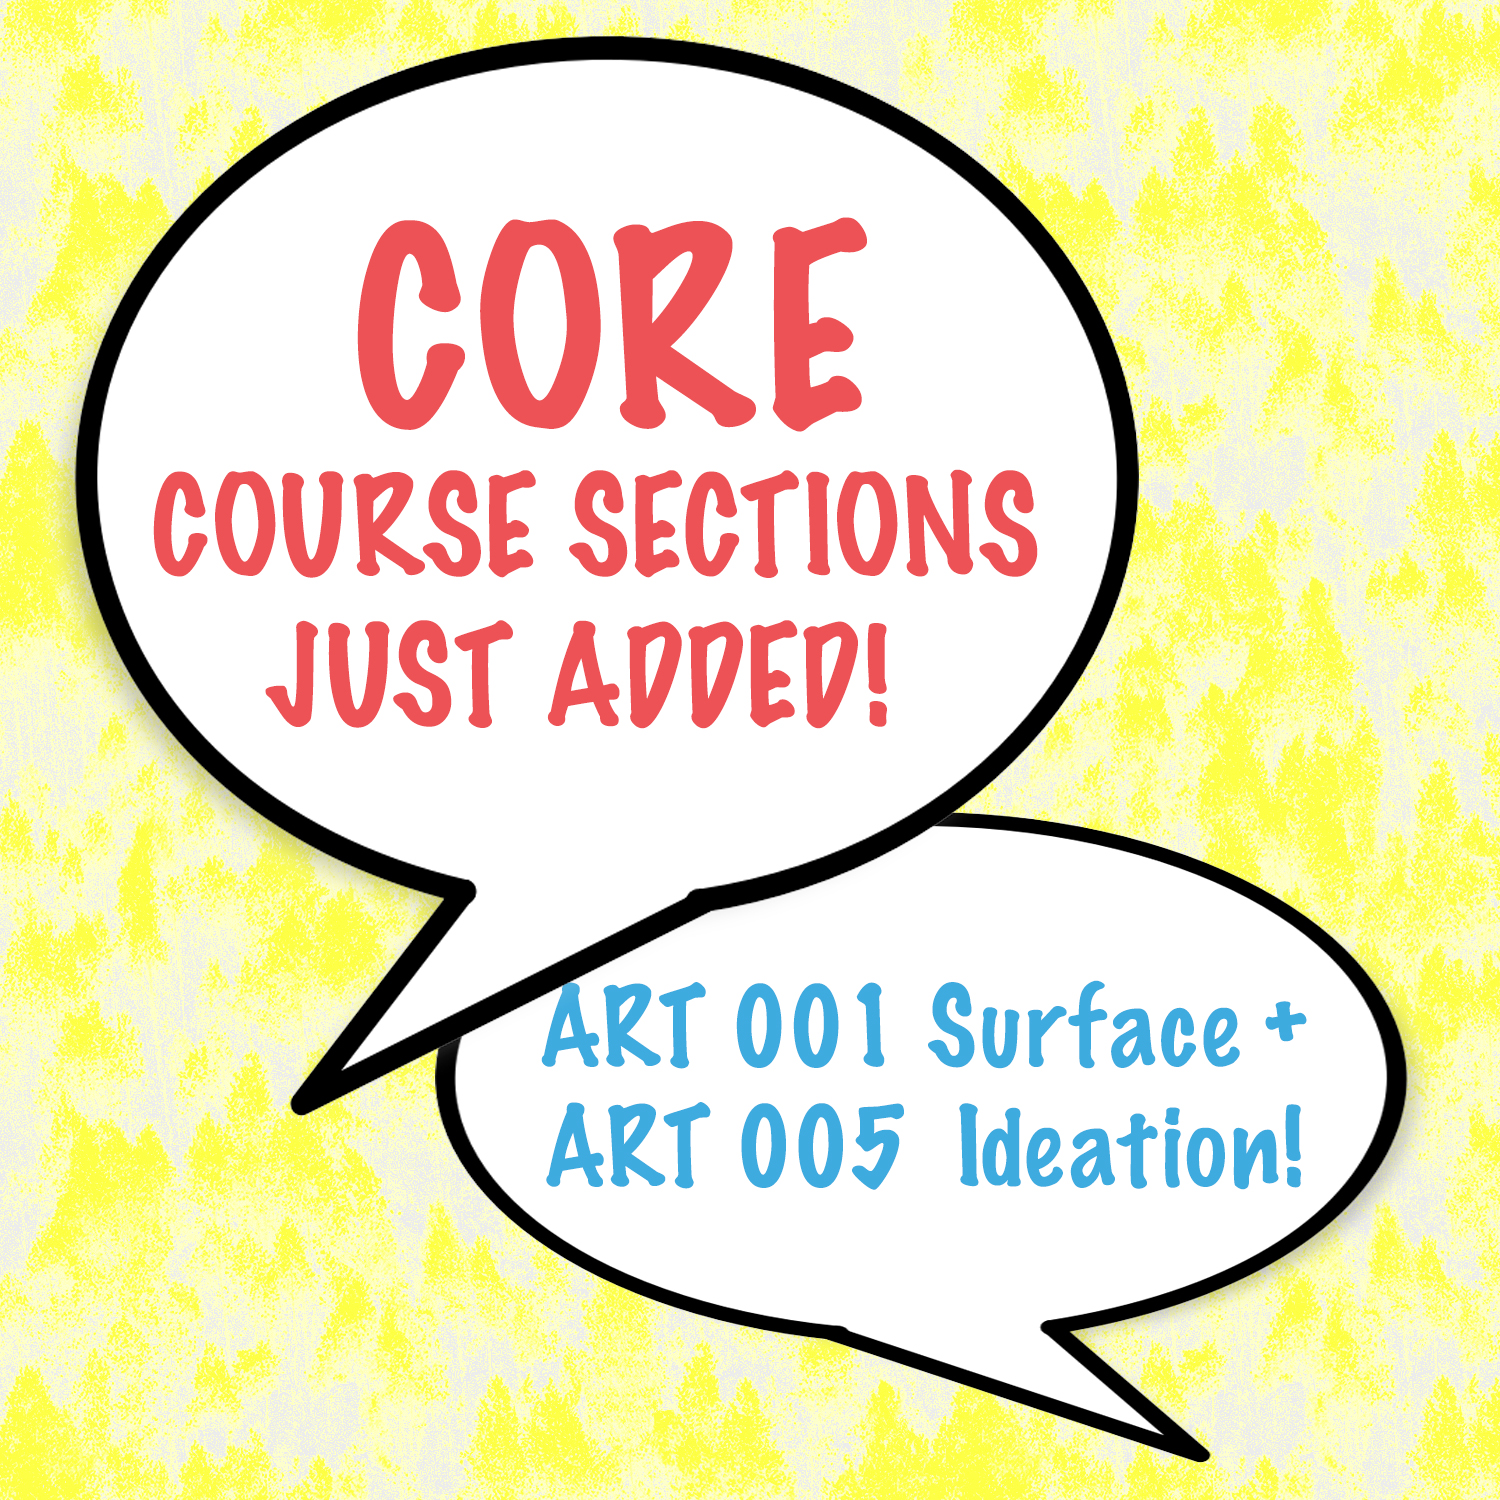 CORE opens 2 more courses, Ideation and Surface